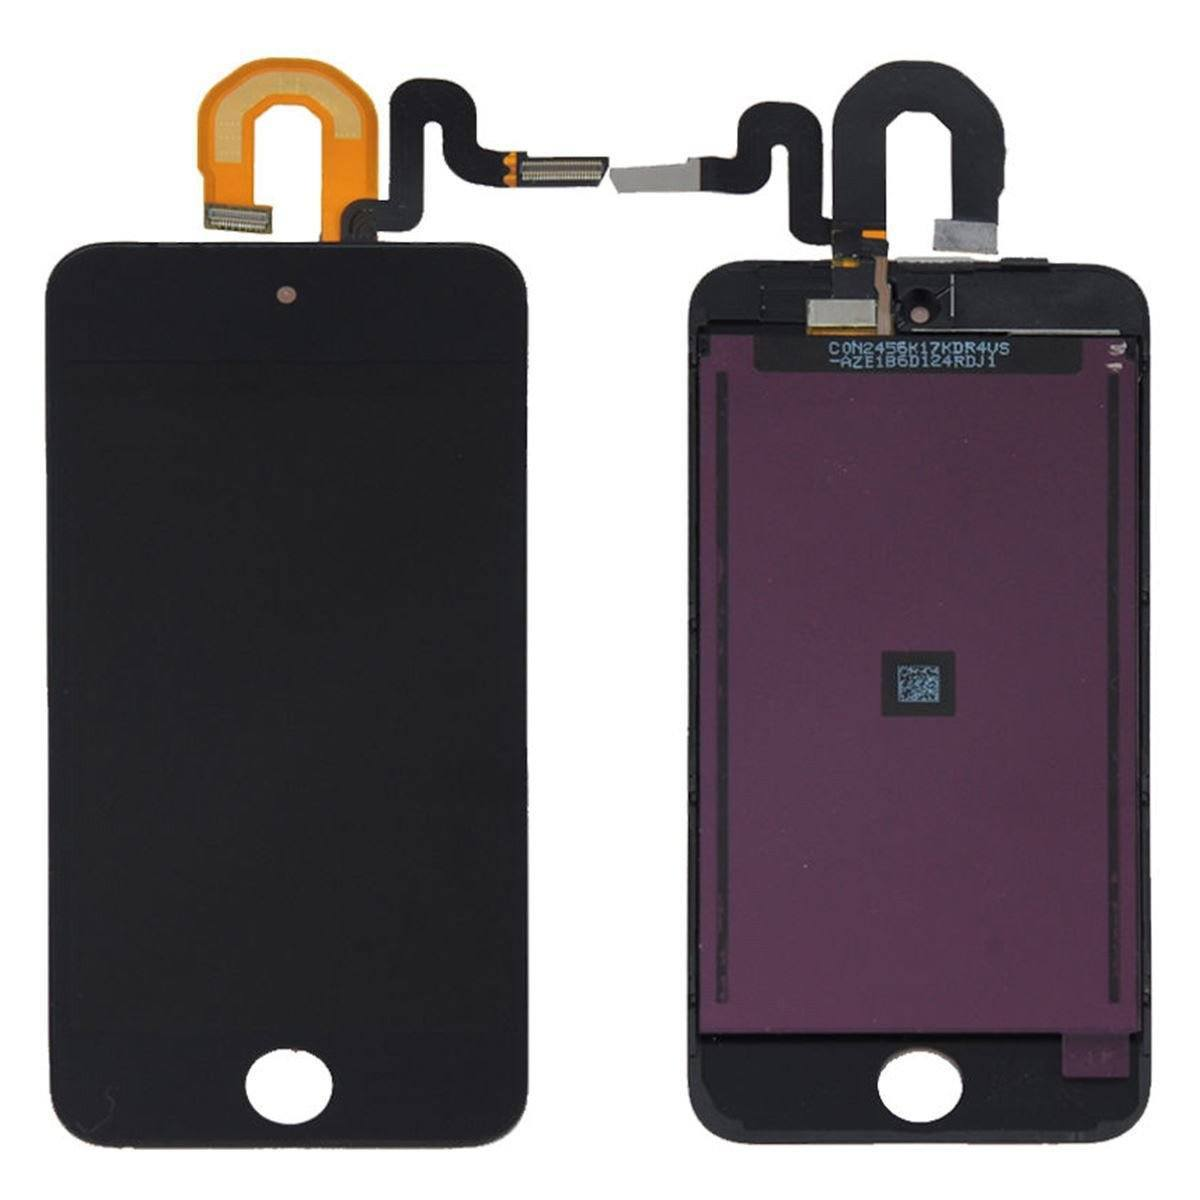 LCD for iPod Touch - Black (5th & 6th Generation)